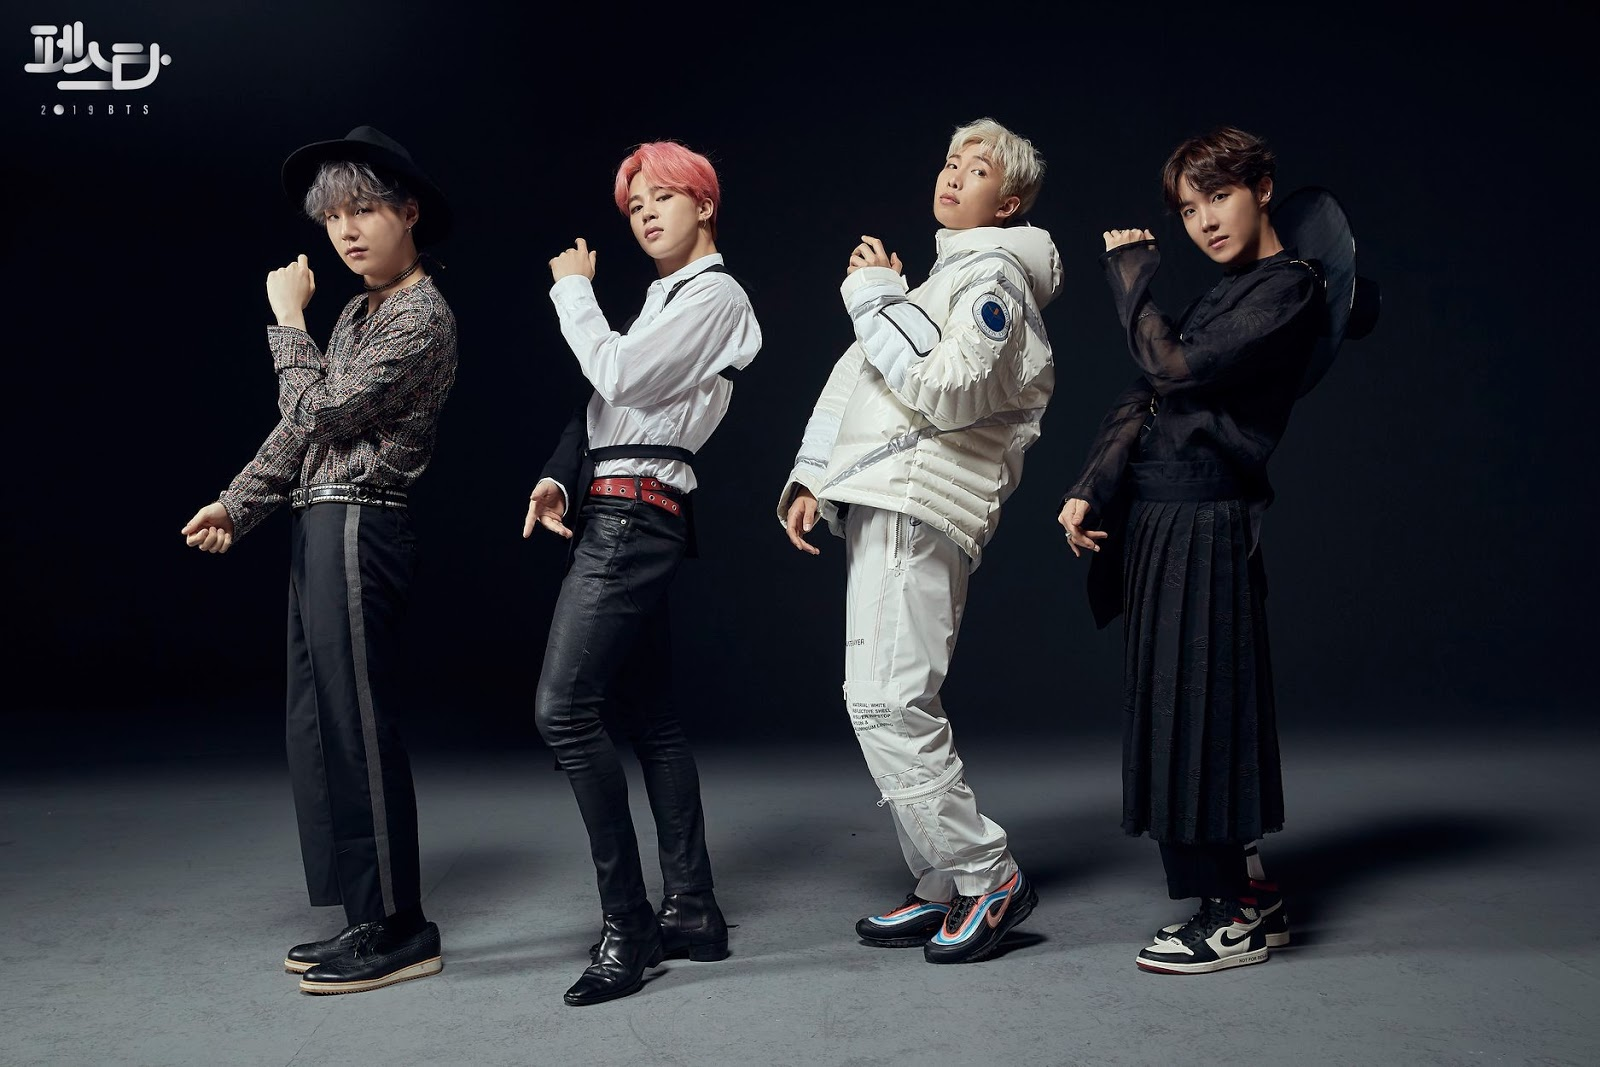 BTS Gift Us With A Blast From The Past In Their Latest